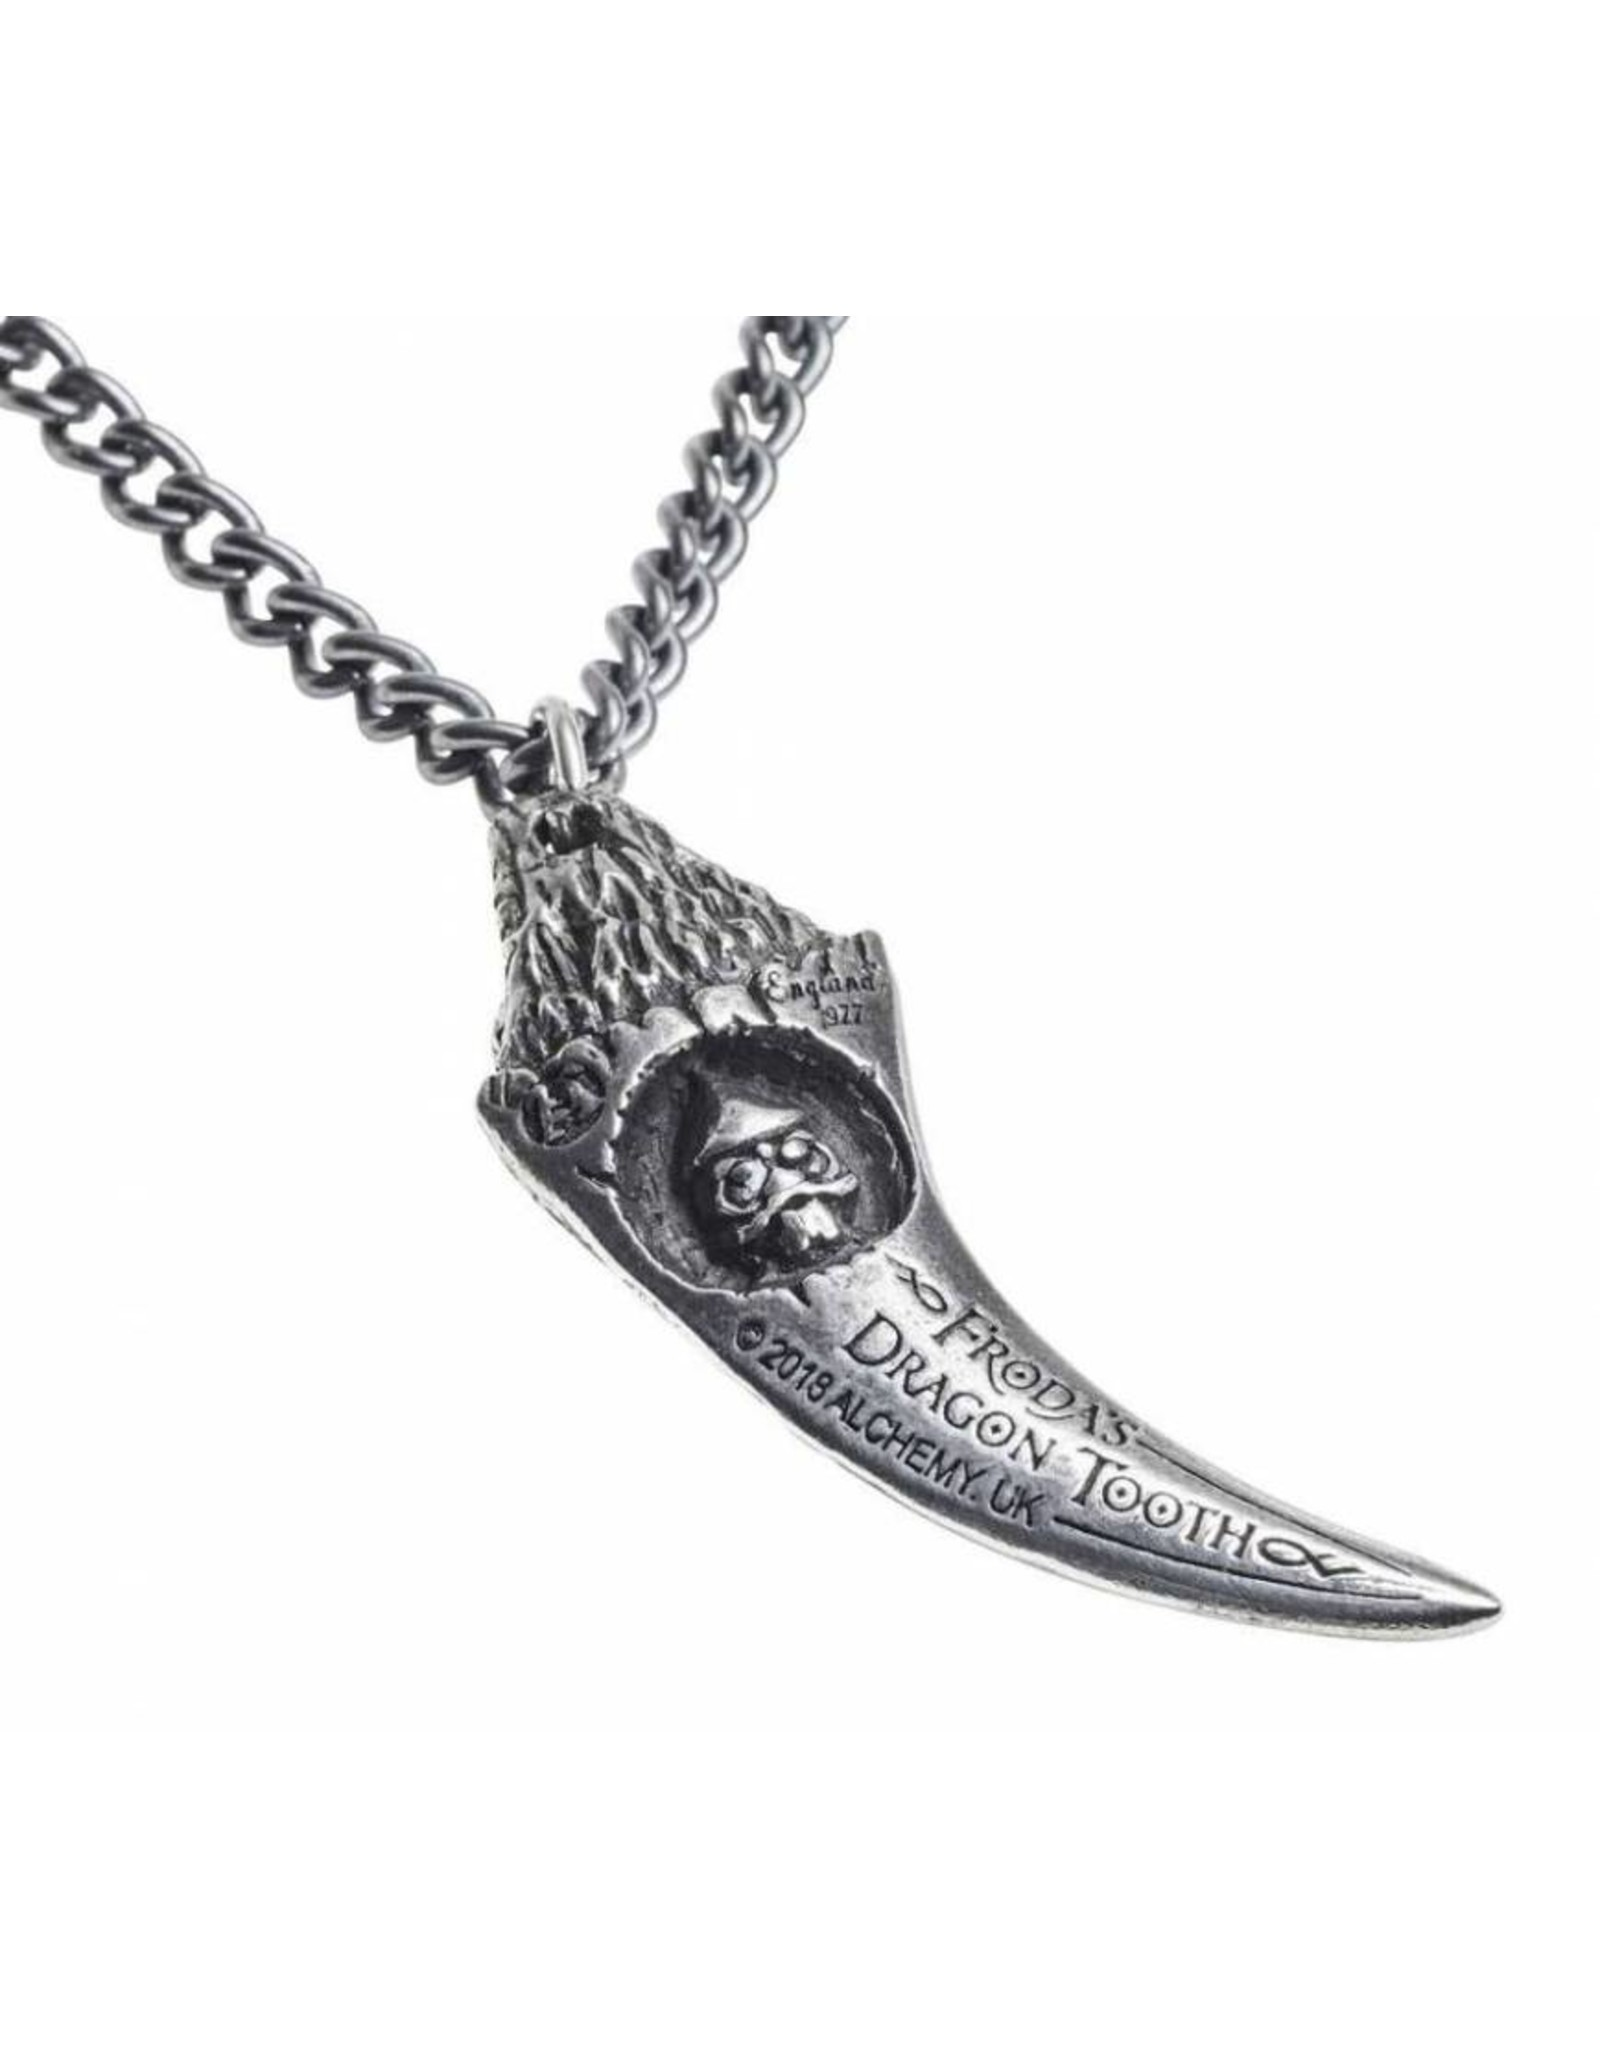 Alchemy Celtic,- Viking,- Gothic accessories - Frodas Dragon Tooth Alchemy pendand en necklace